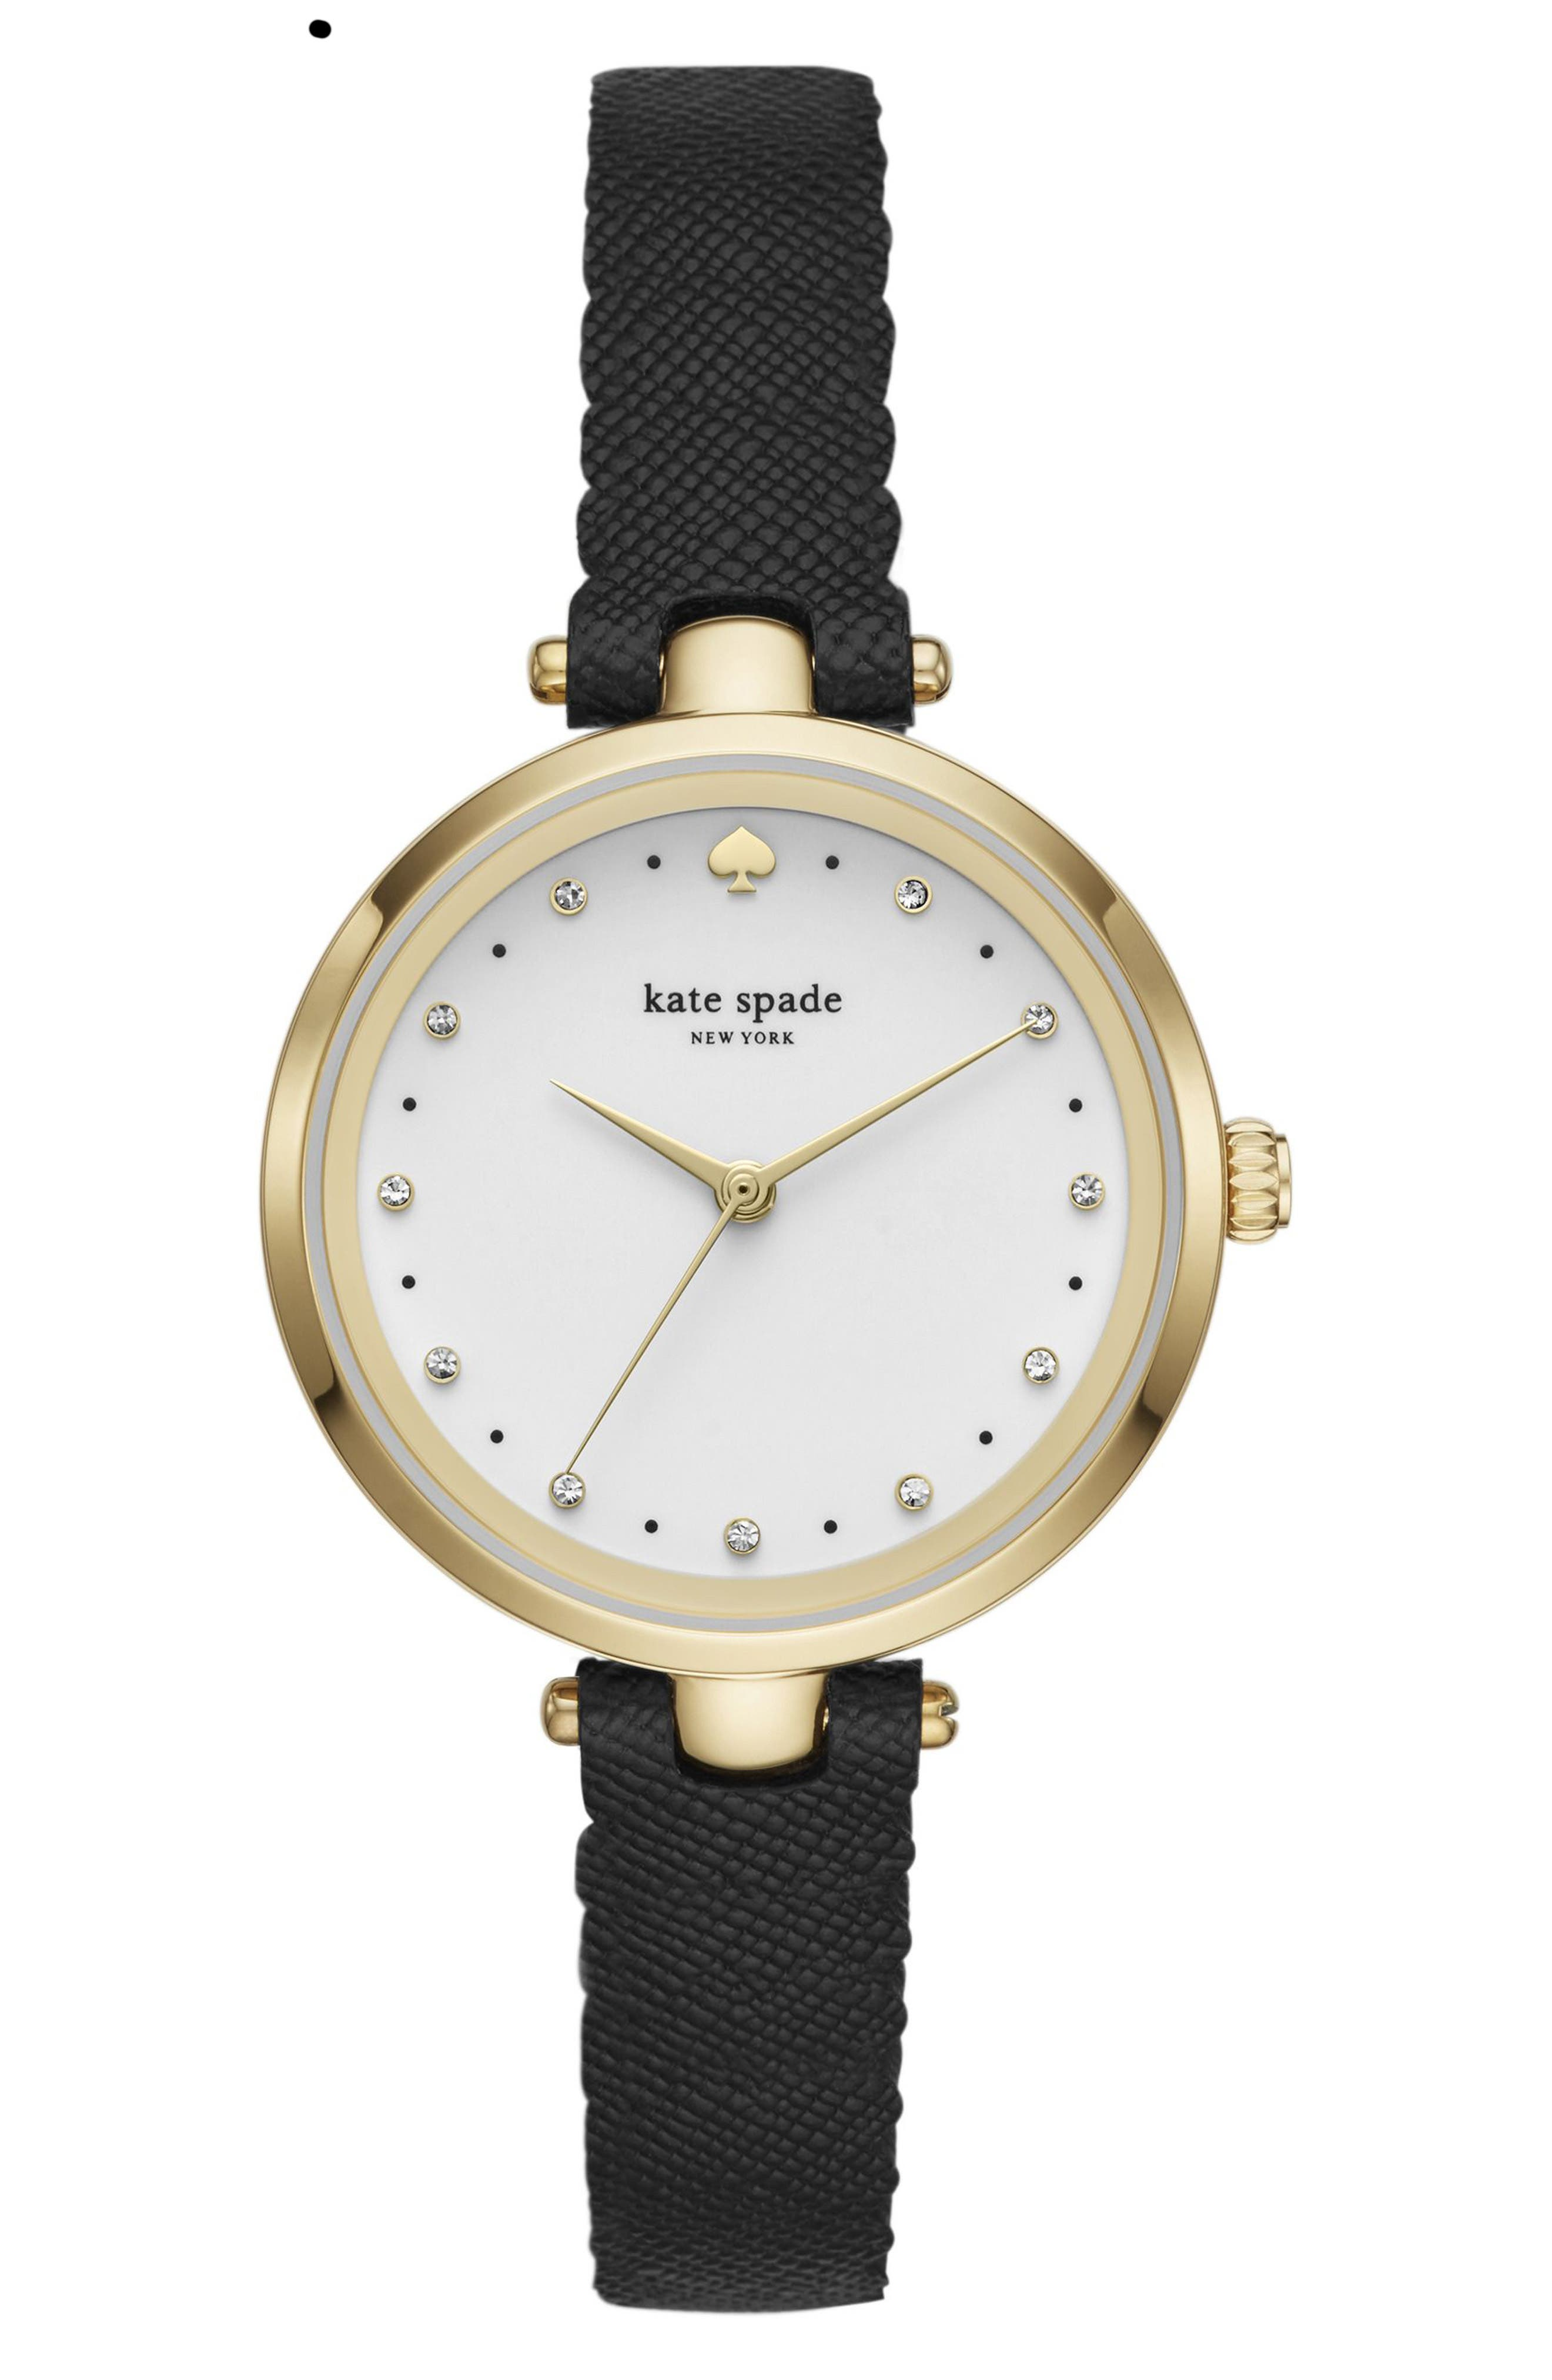 Main Image - kate spade new york holland leather strap watch, 34mm